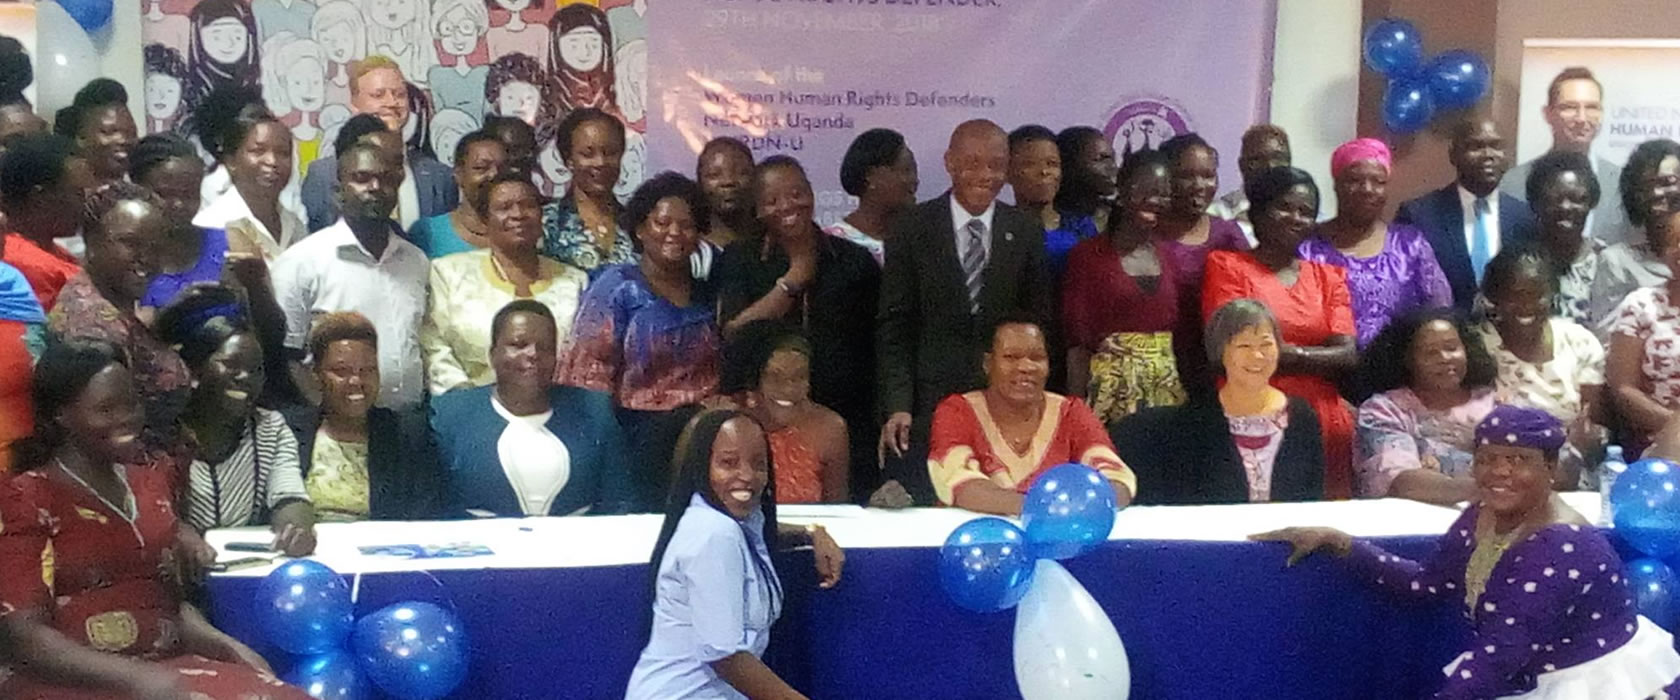 Launch of the Women Human Rights Defenders Network